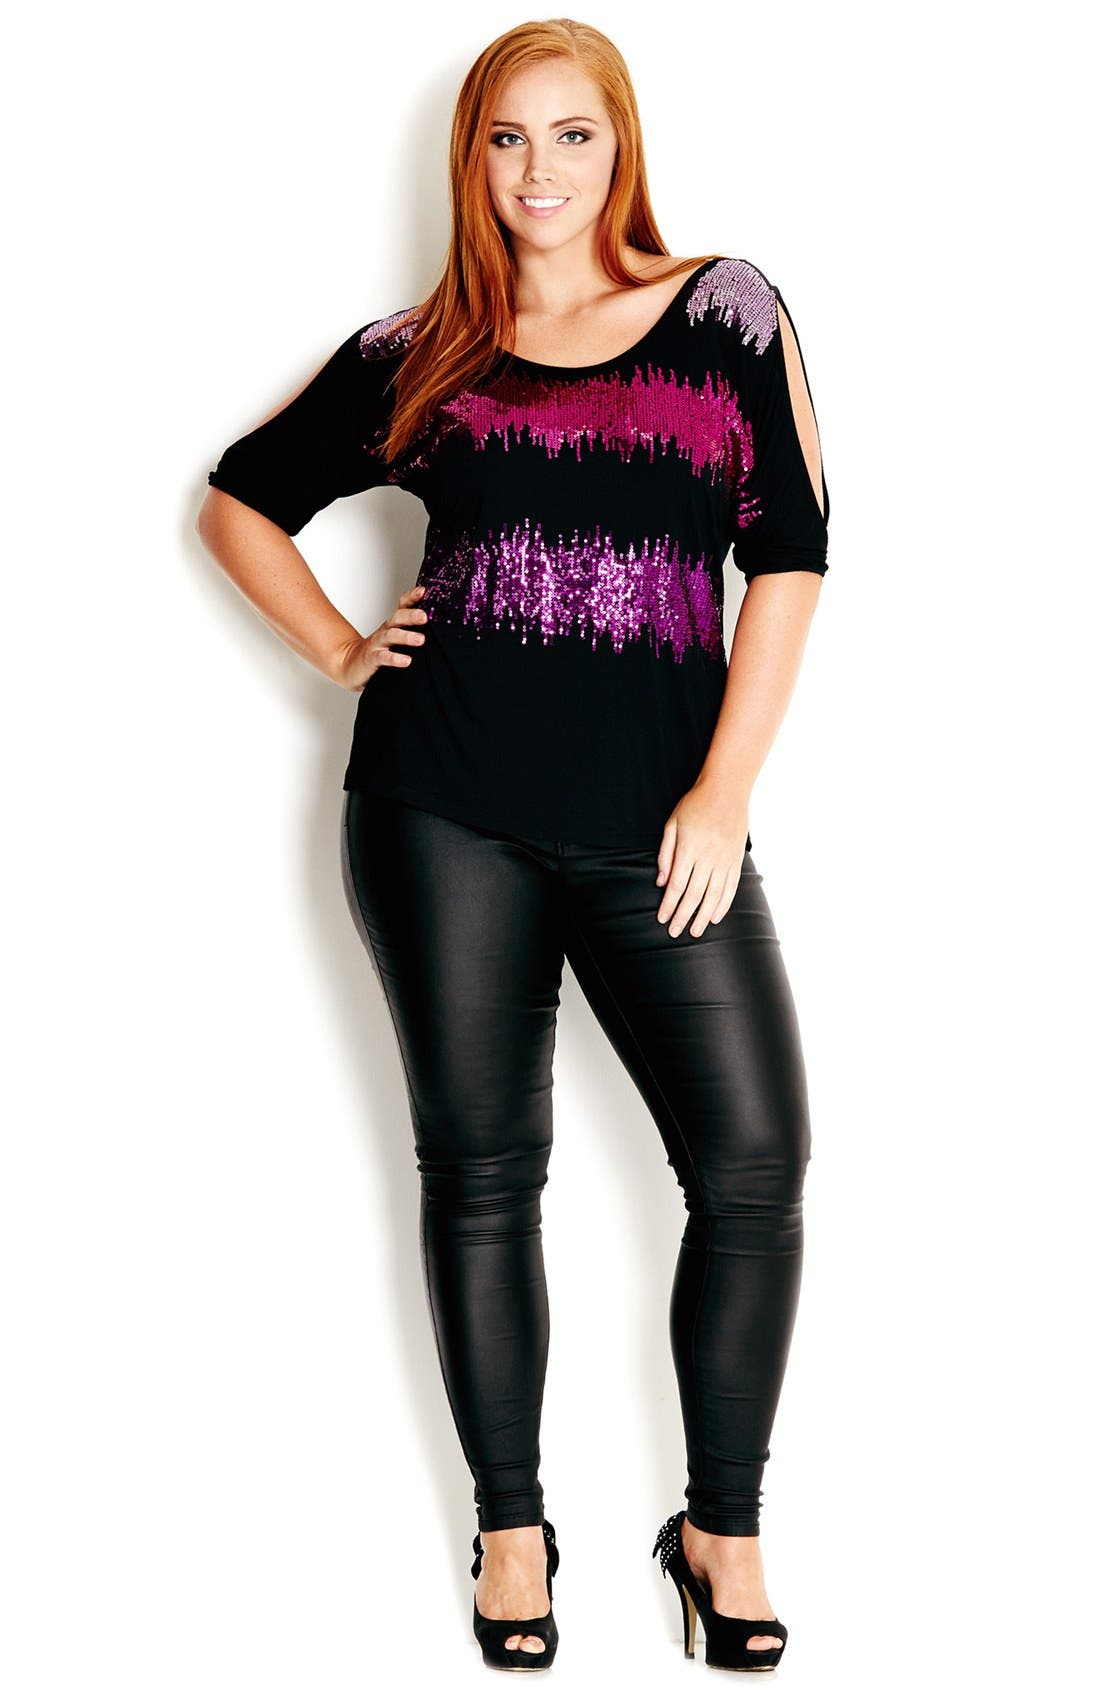 Alternate Image 1 Selected - City Chic 'Soundwave' Sequin Front Top (Plus Size)